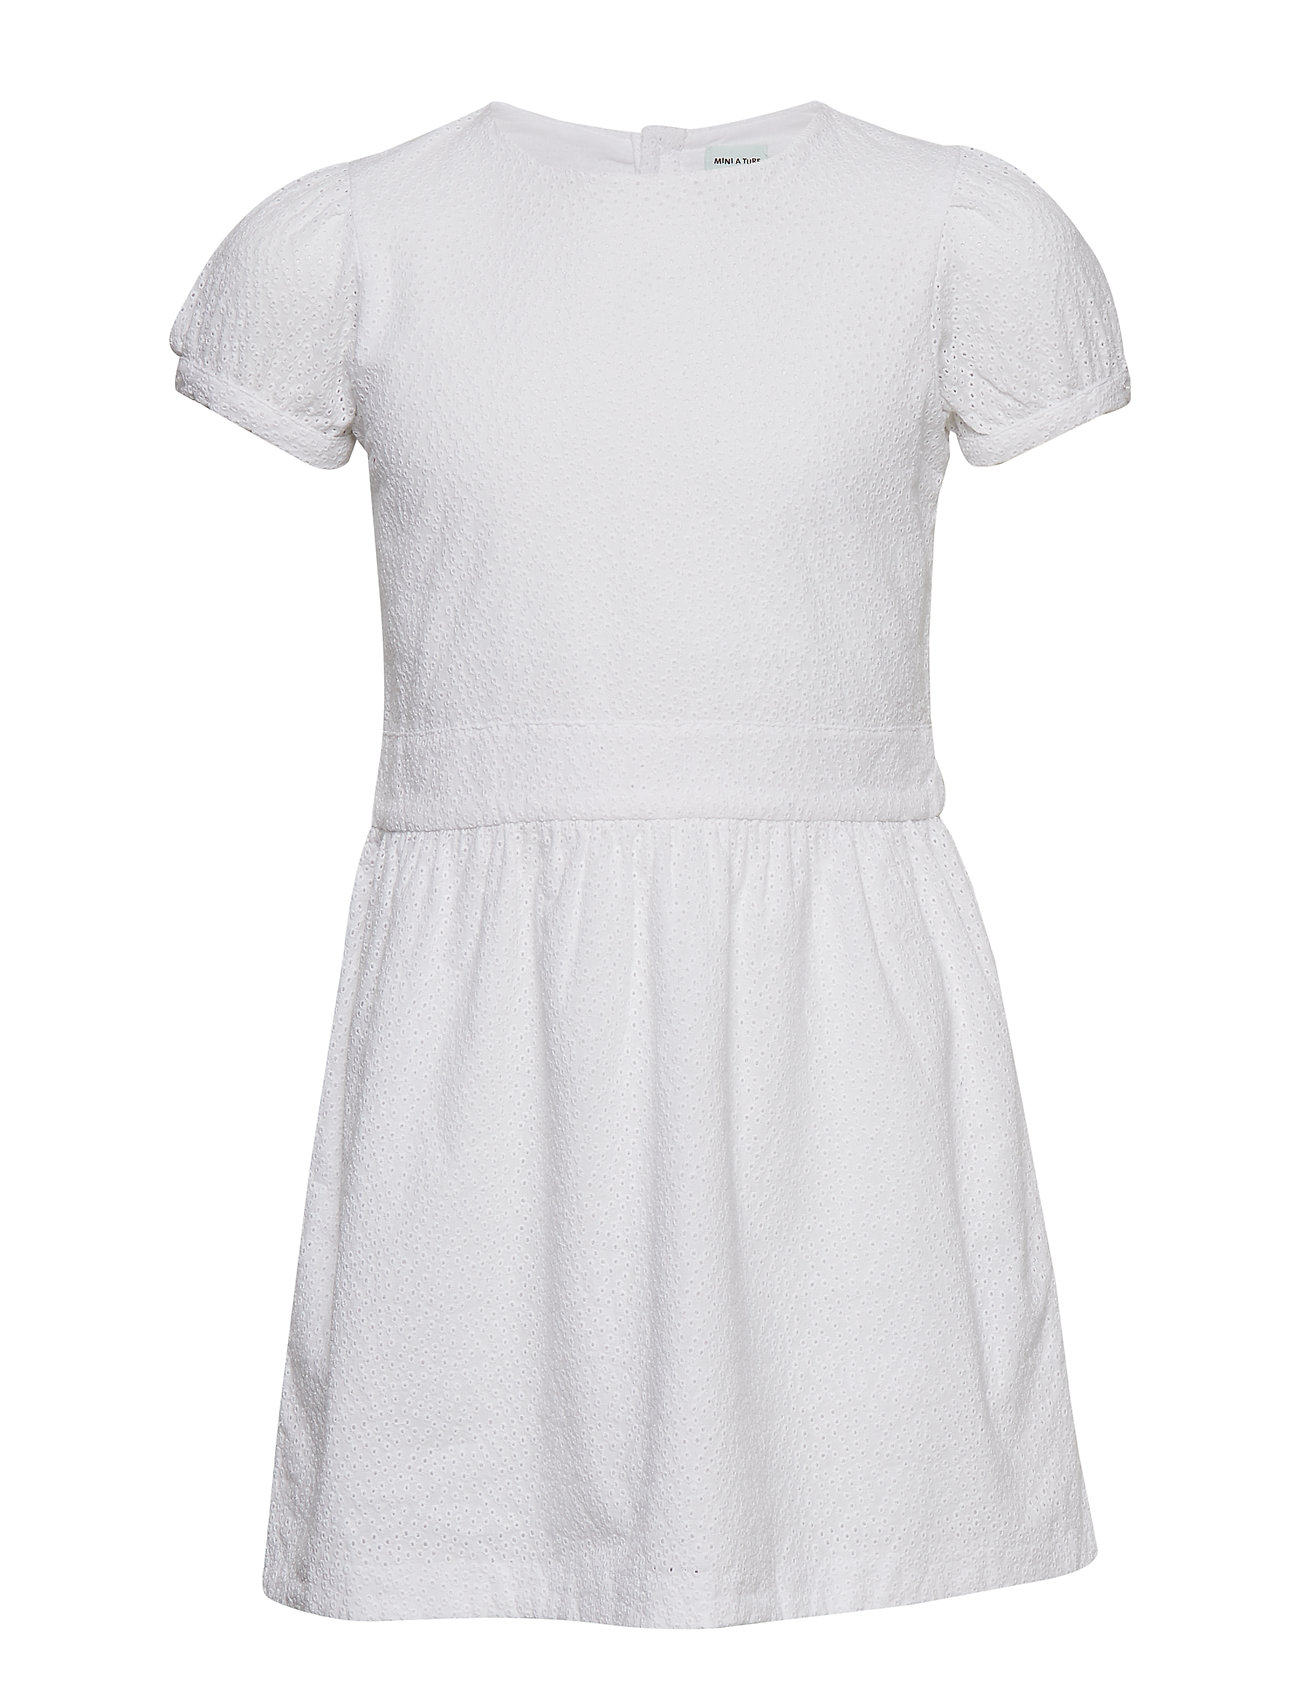 Mini A Ture Sanaz Dress, MK - WHITE